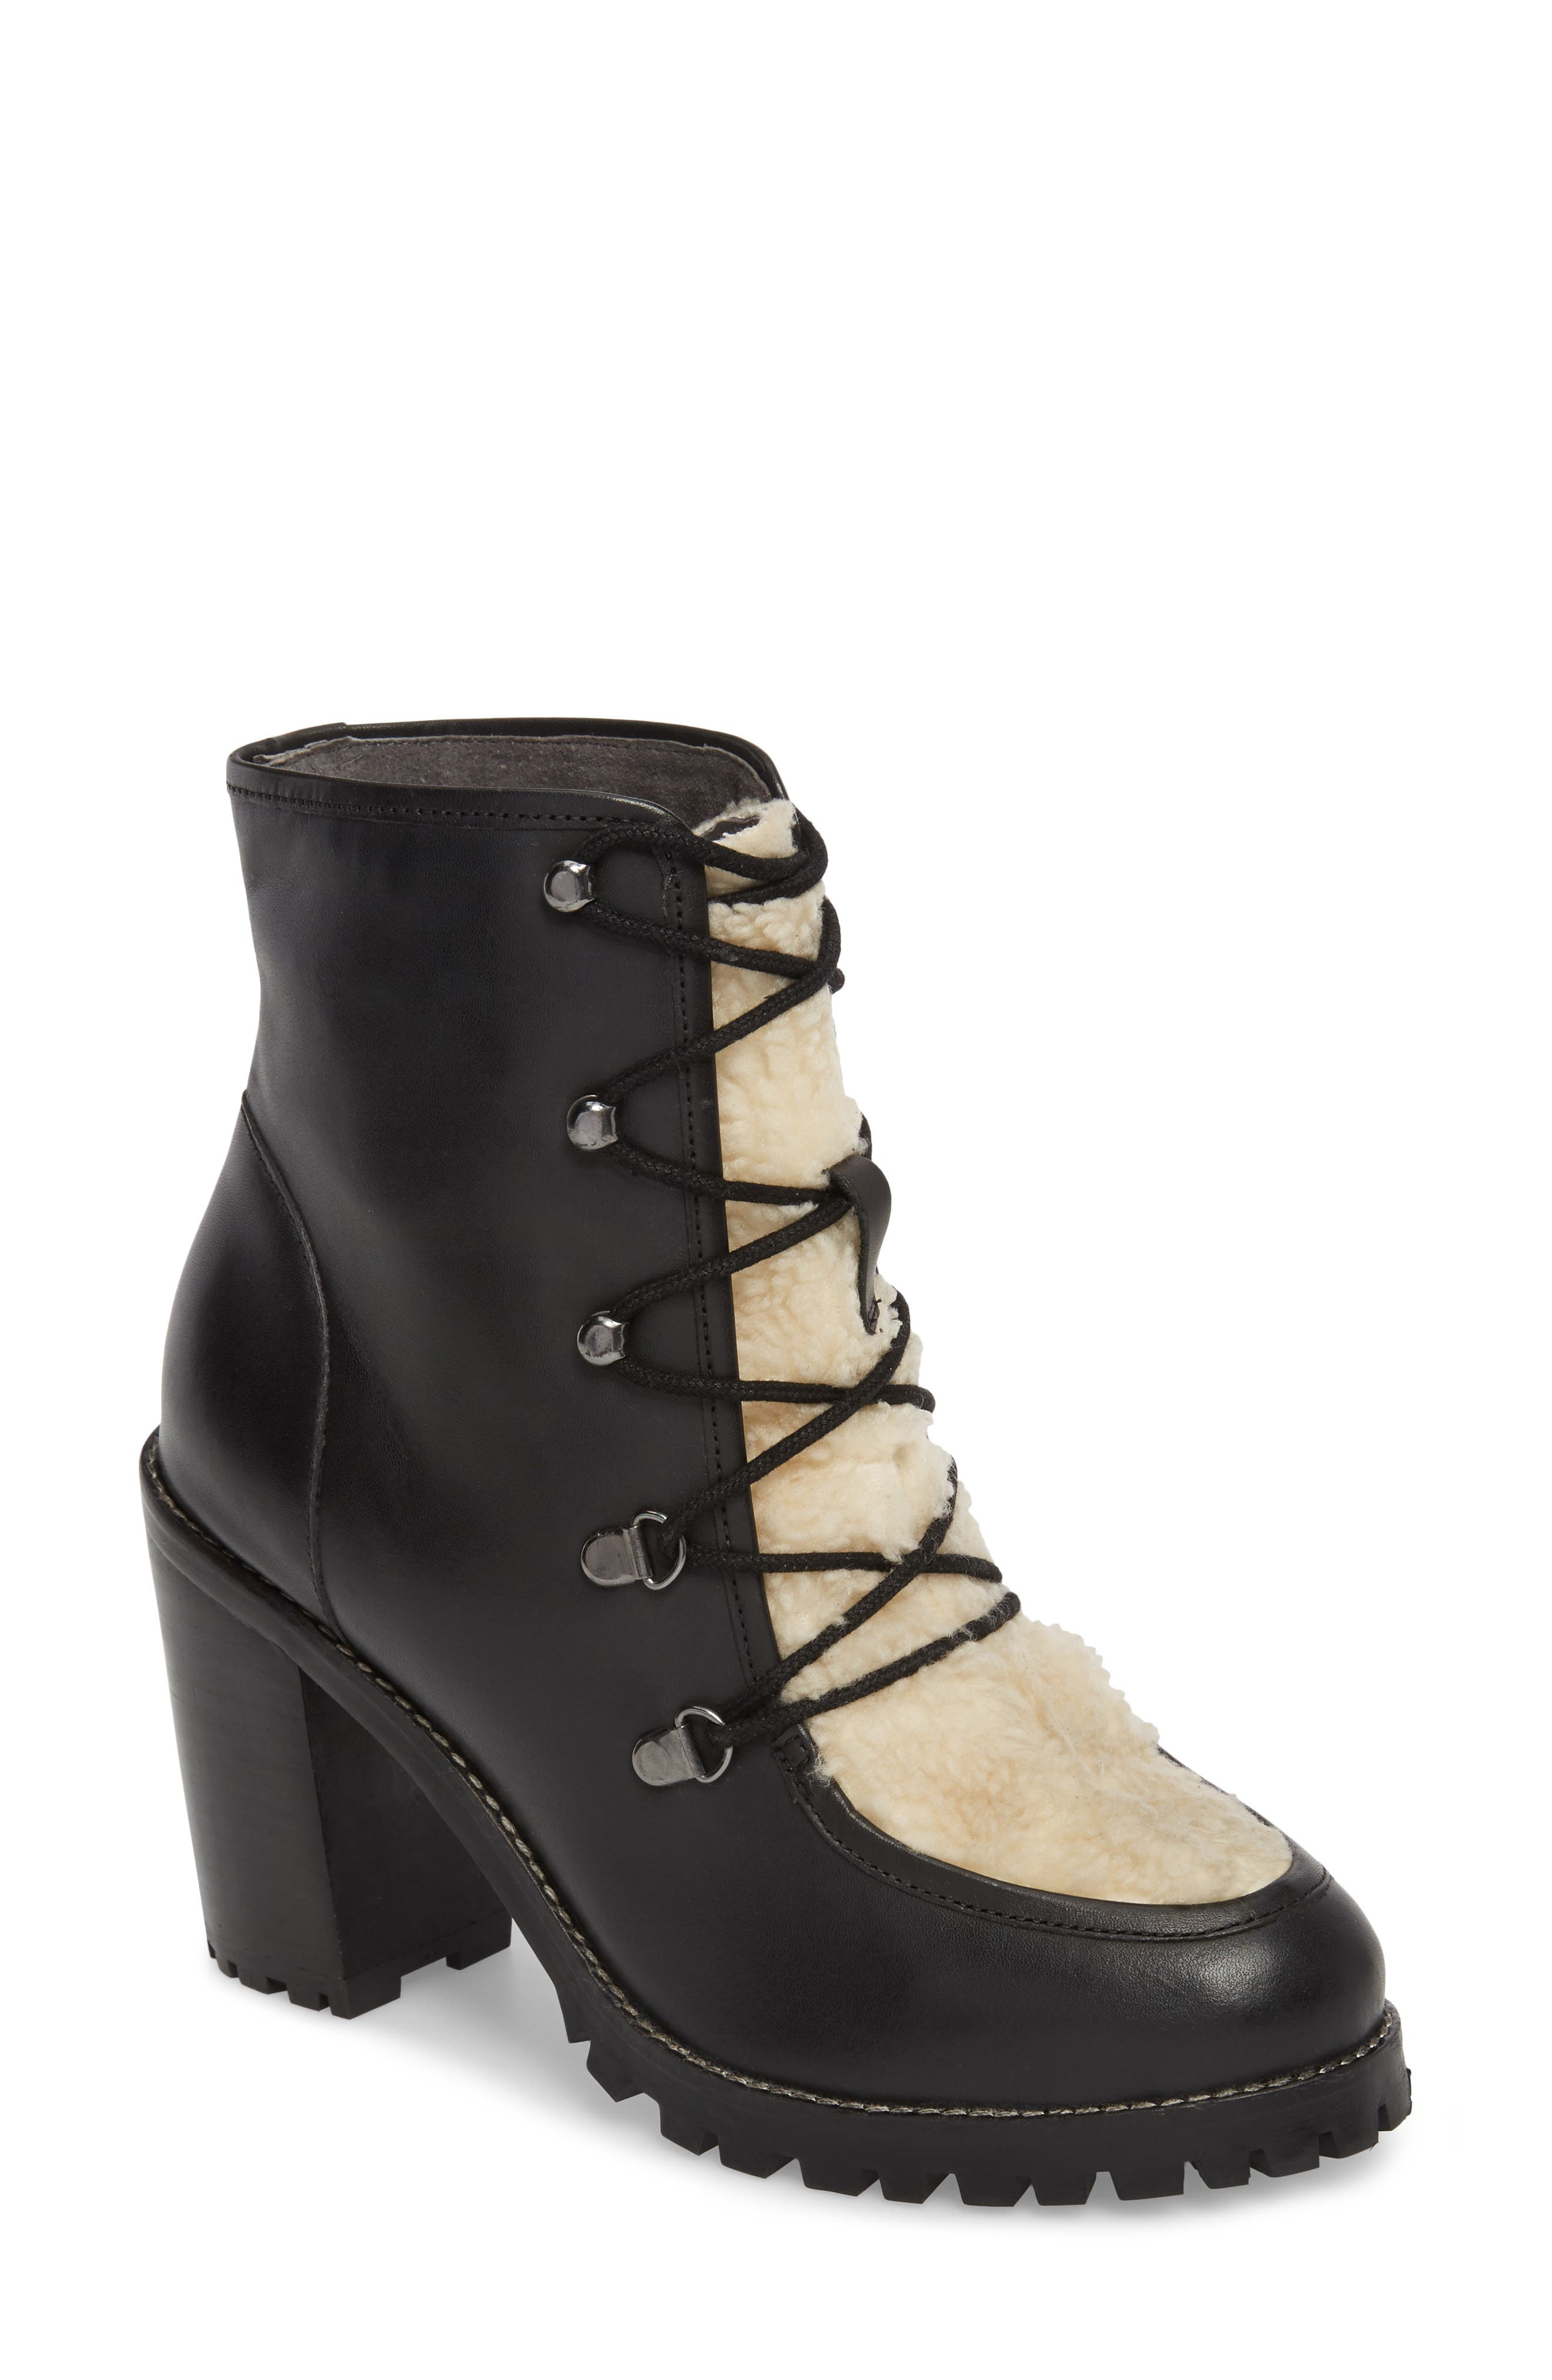 Theater Lace-Up Bootie,                             Main thumbnail 1, color,                             Black Leather